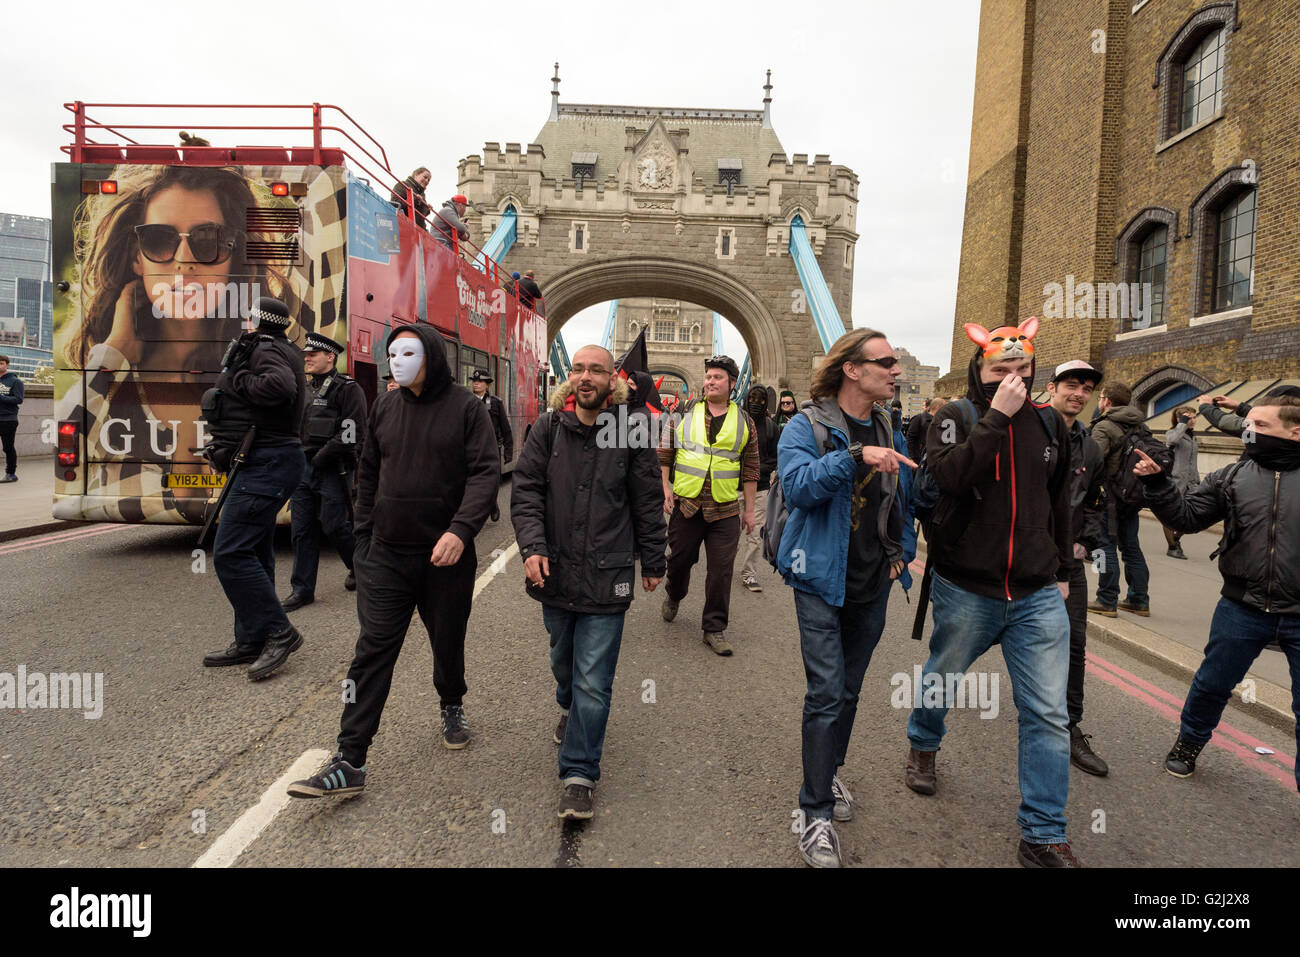 May Day Anarchist group with hidden faces, slogans and red flags walking across Tower Bridge May 1st 2016 Stock Photo